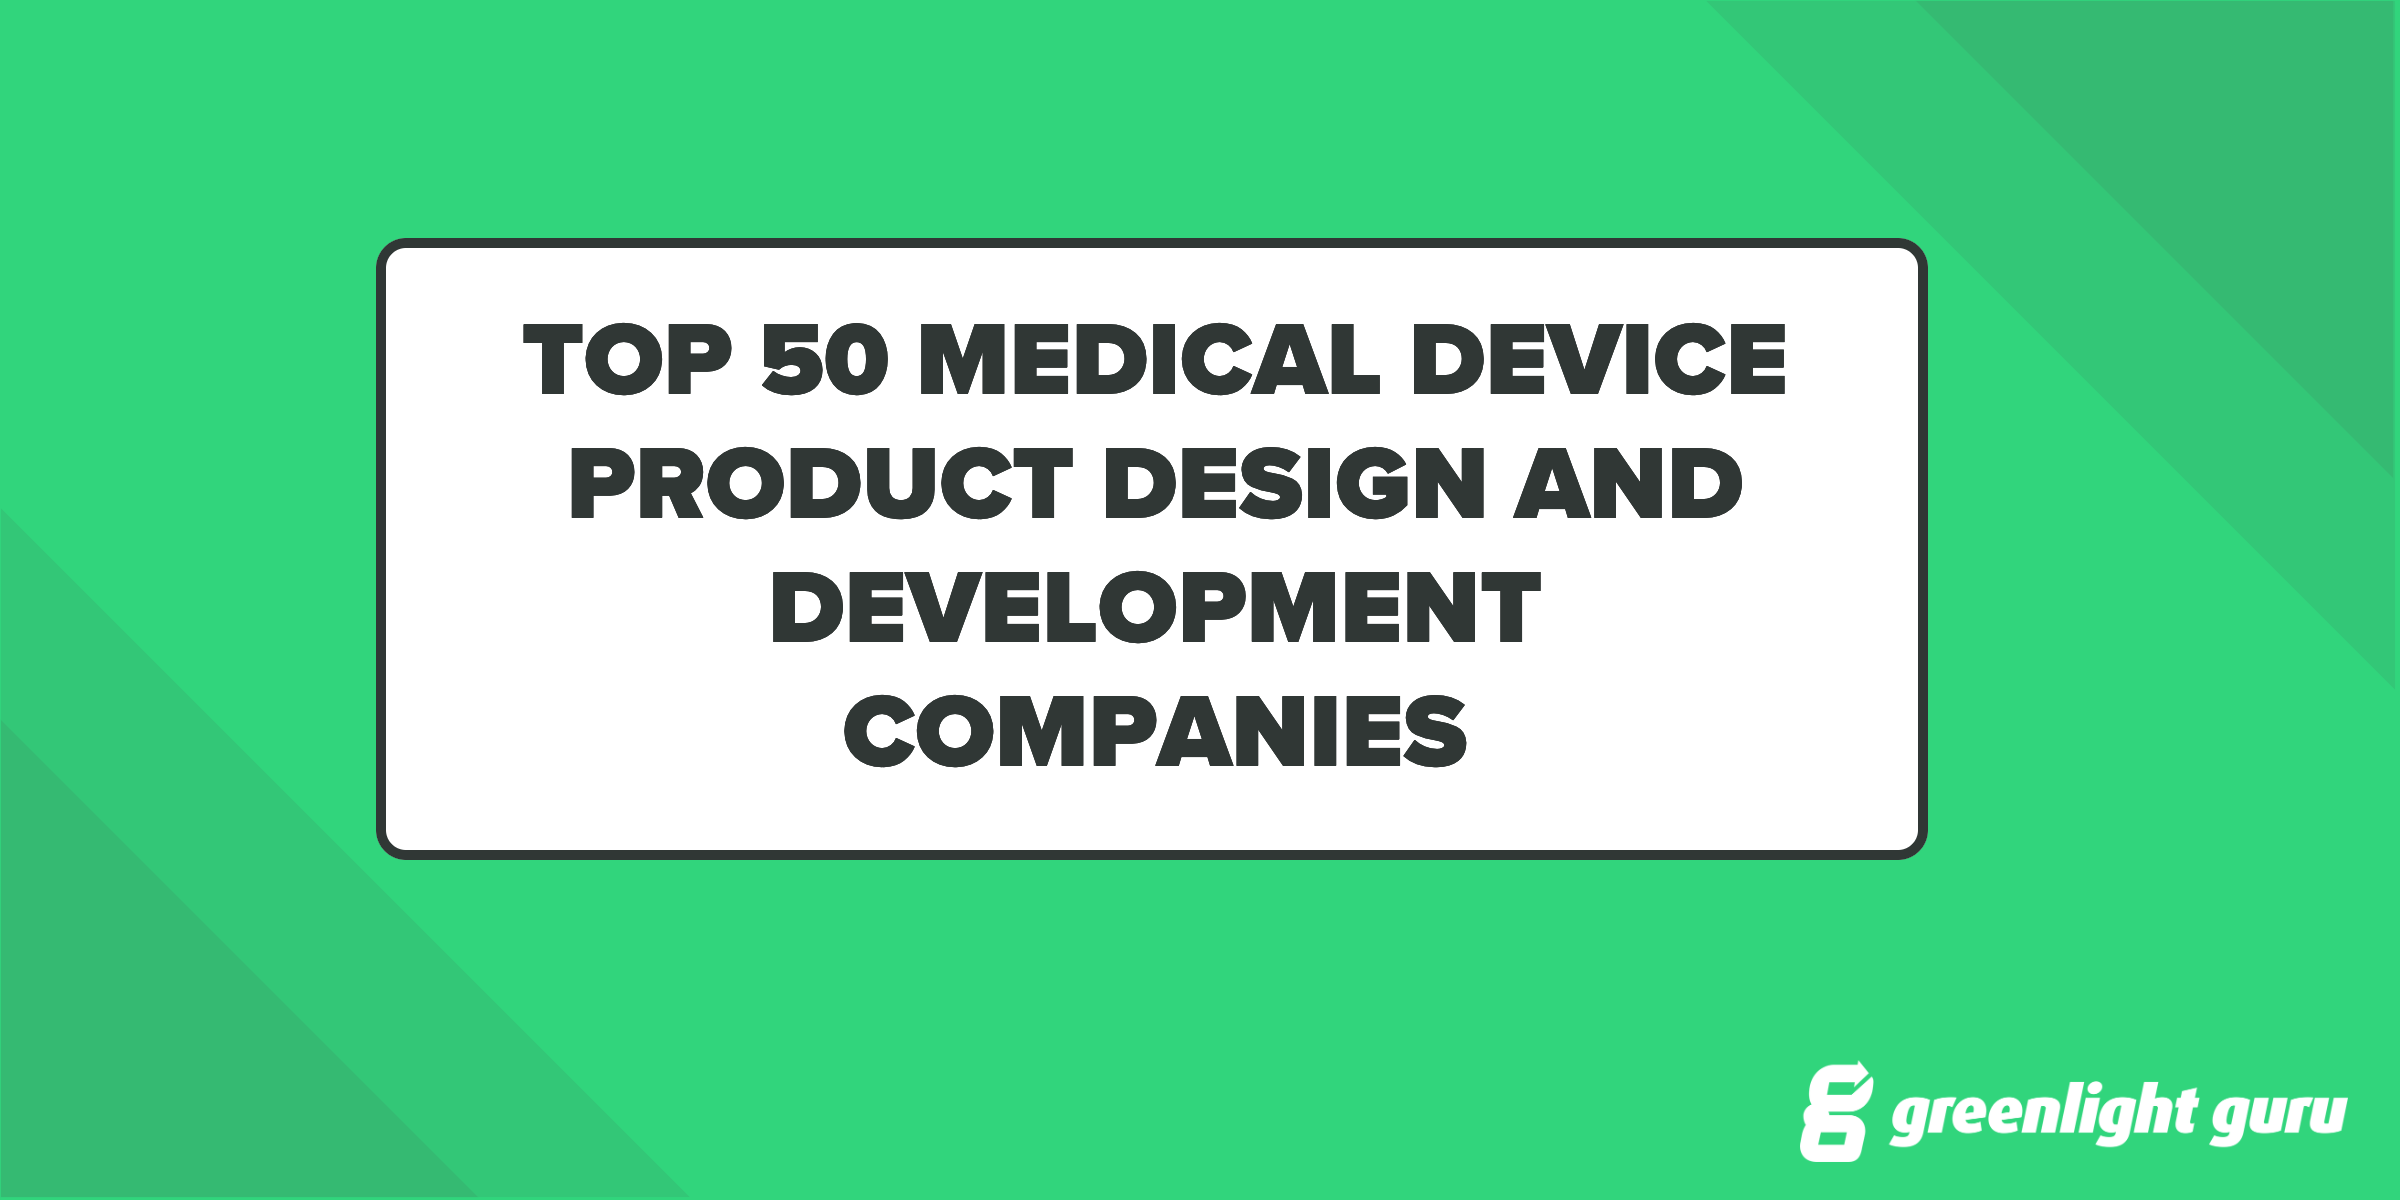 Top 50 Medical Device Product Design And Development Companies